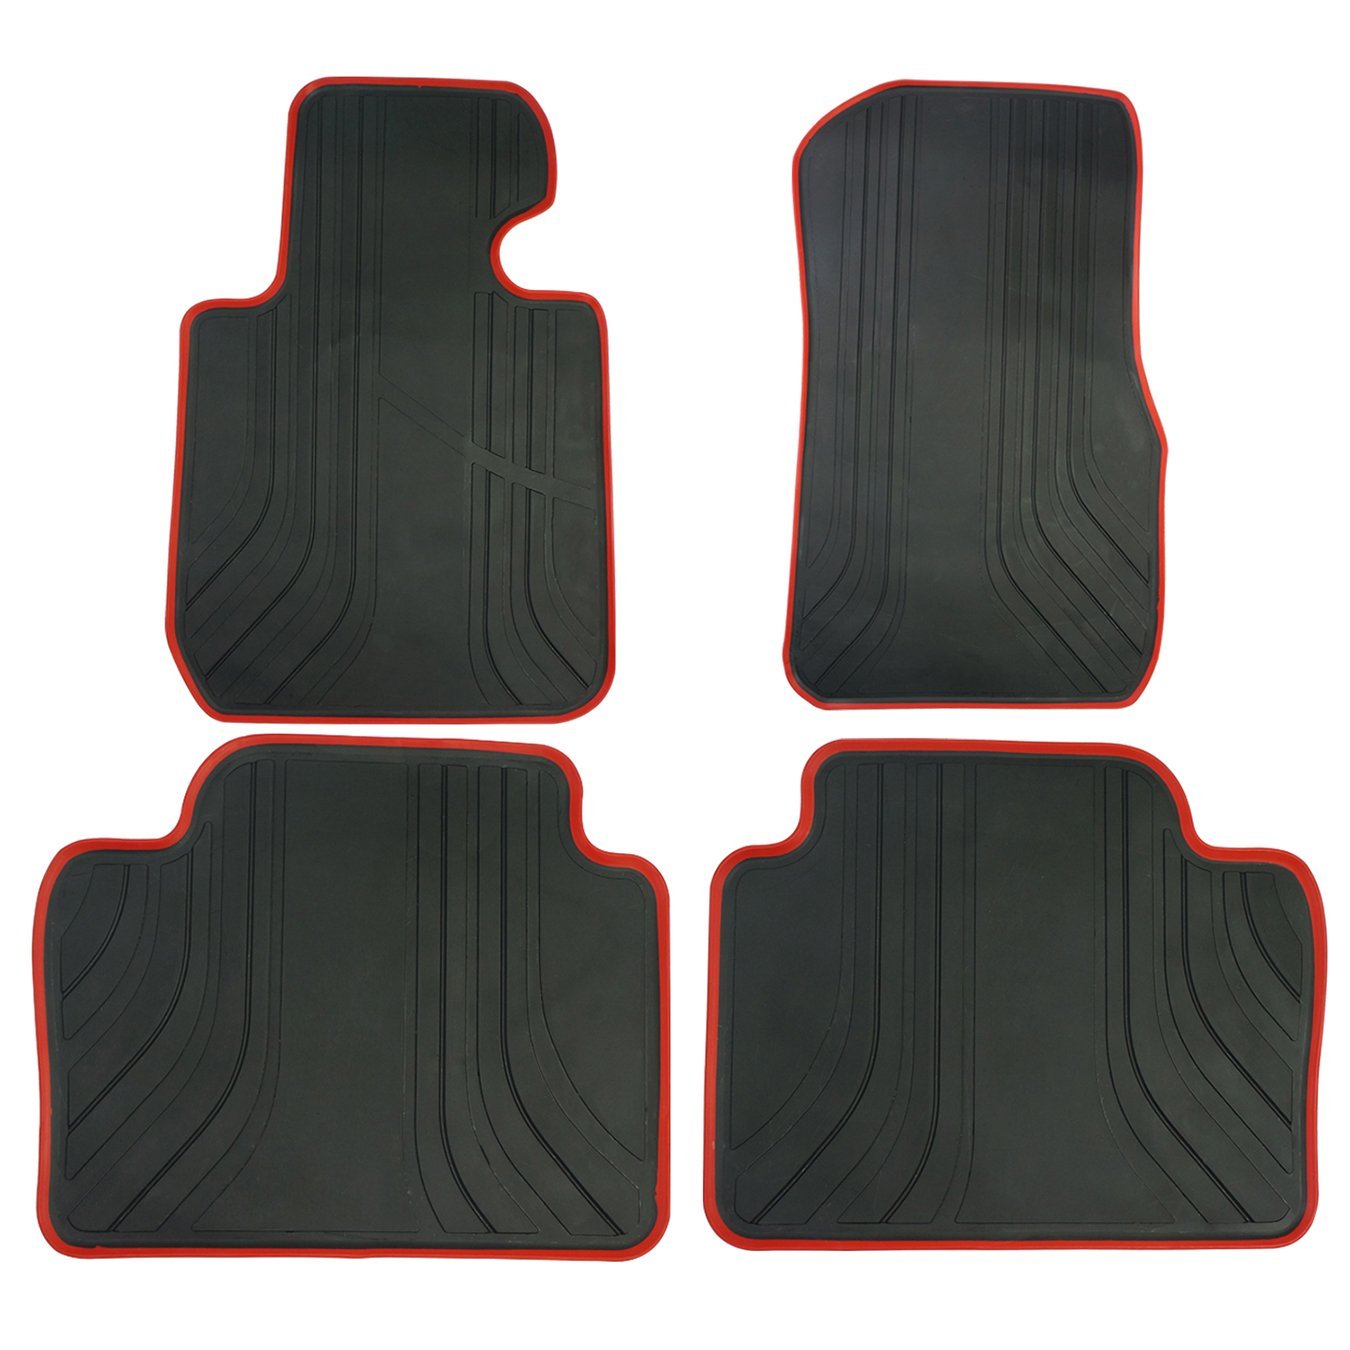 biosp Fit 2014-2017 BMW 3 Series Floor Mats Front and Rear Set For BMW 316i 318i 320i 325i 328i Heavy Duty Rubber Car Carpet All Weather